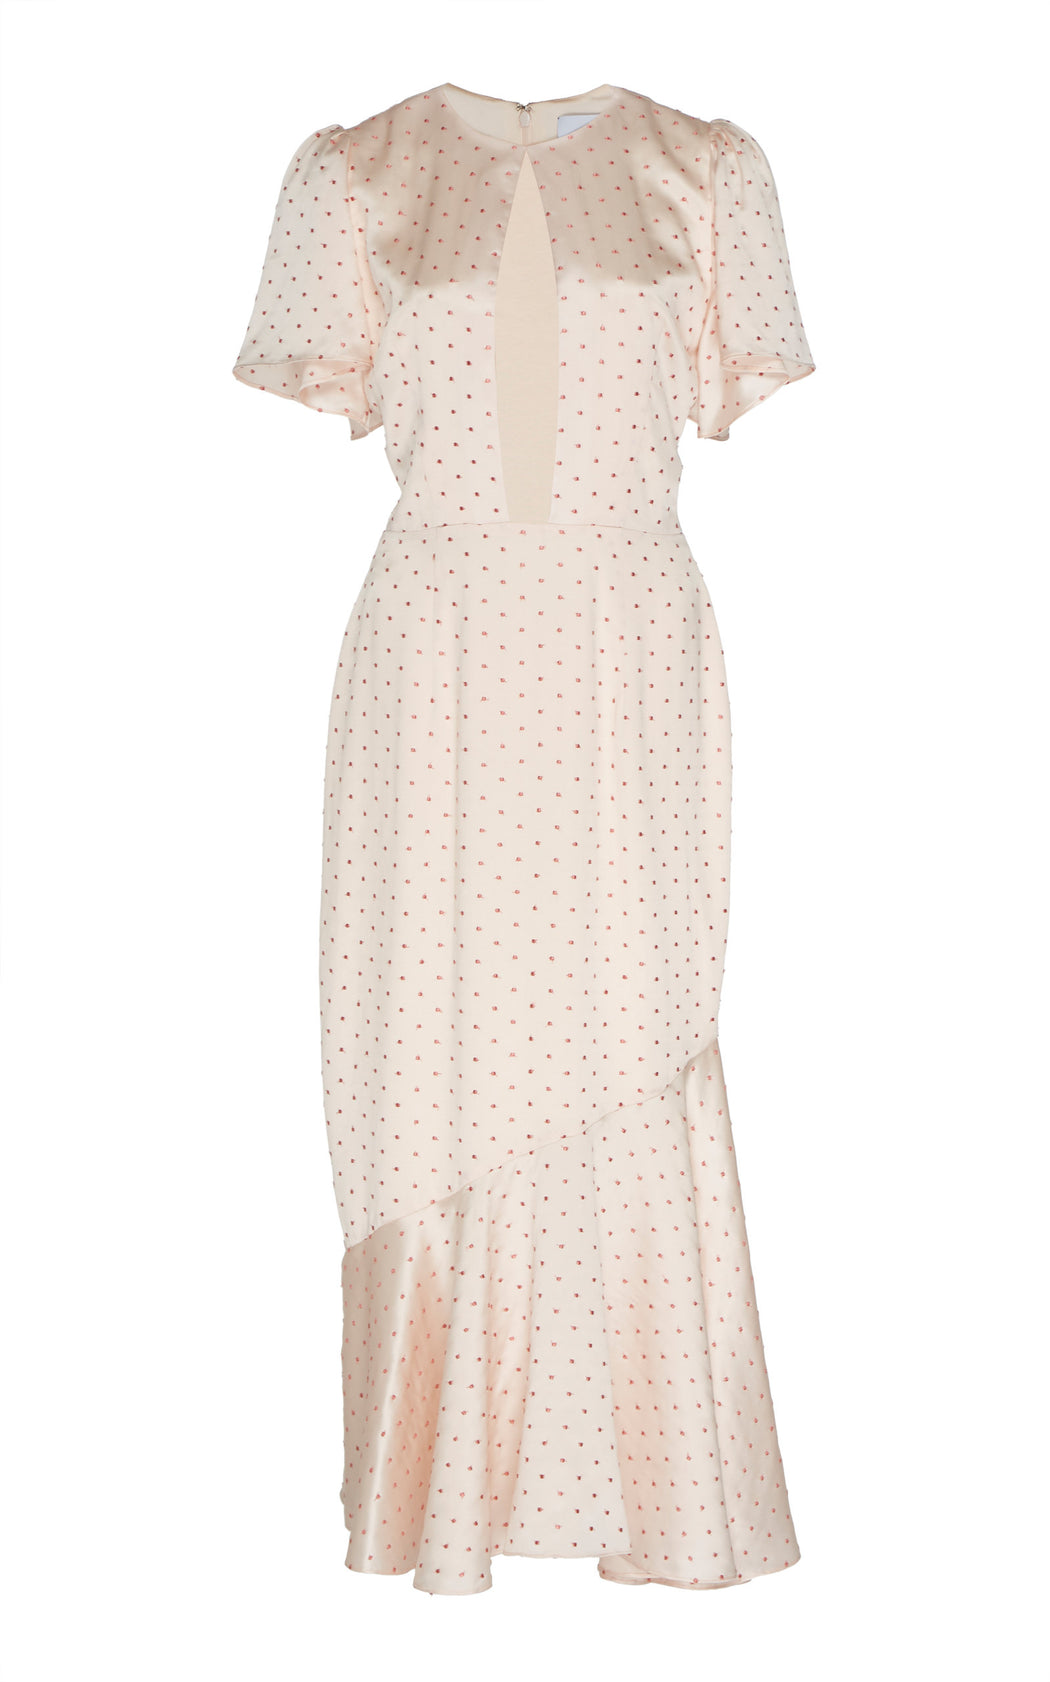 In Stock: Ingrid Polka Dot Dress